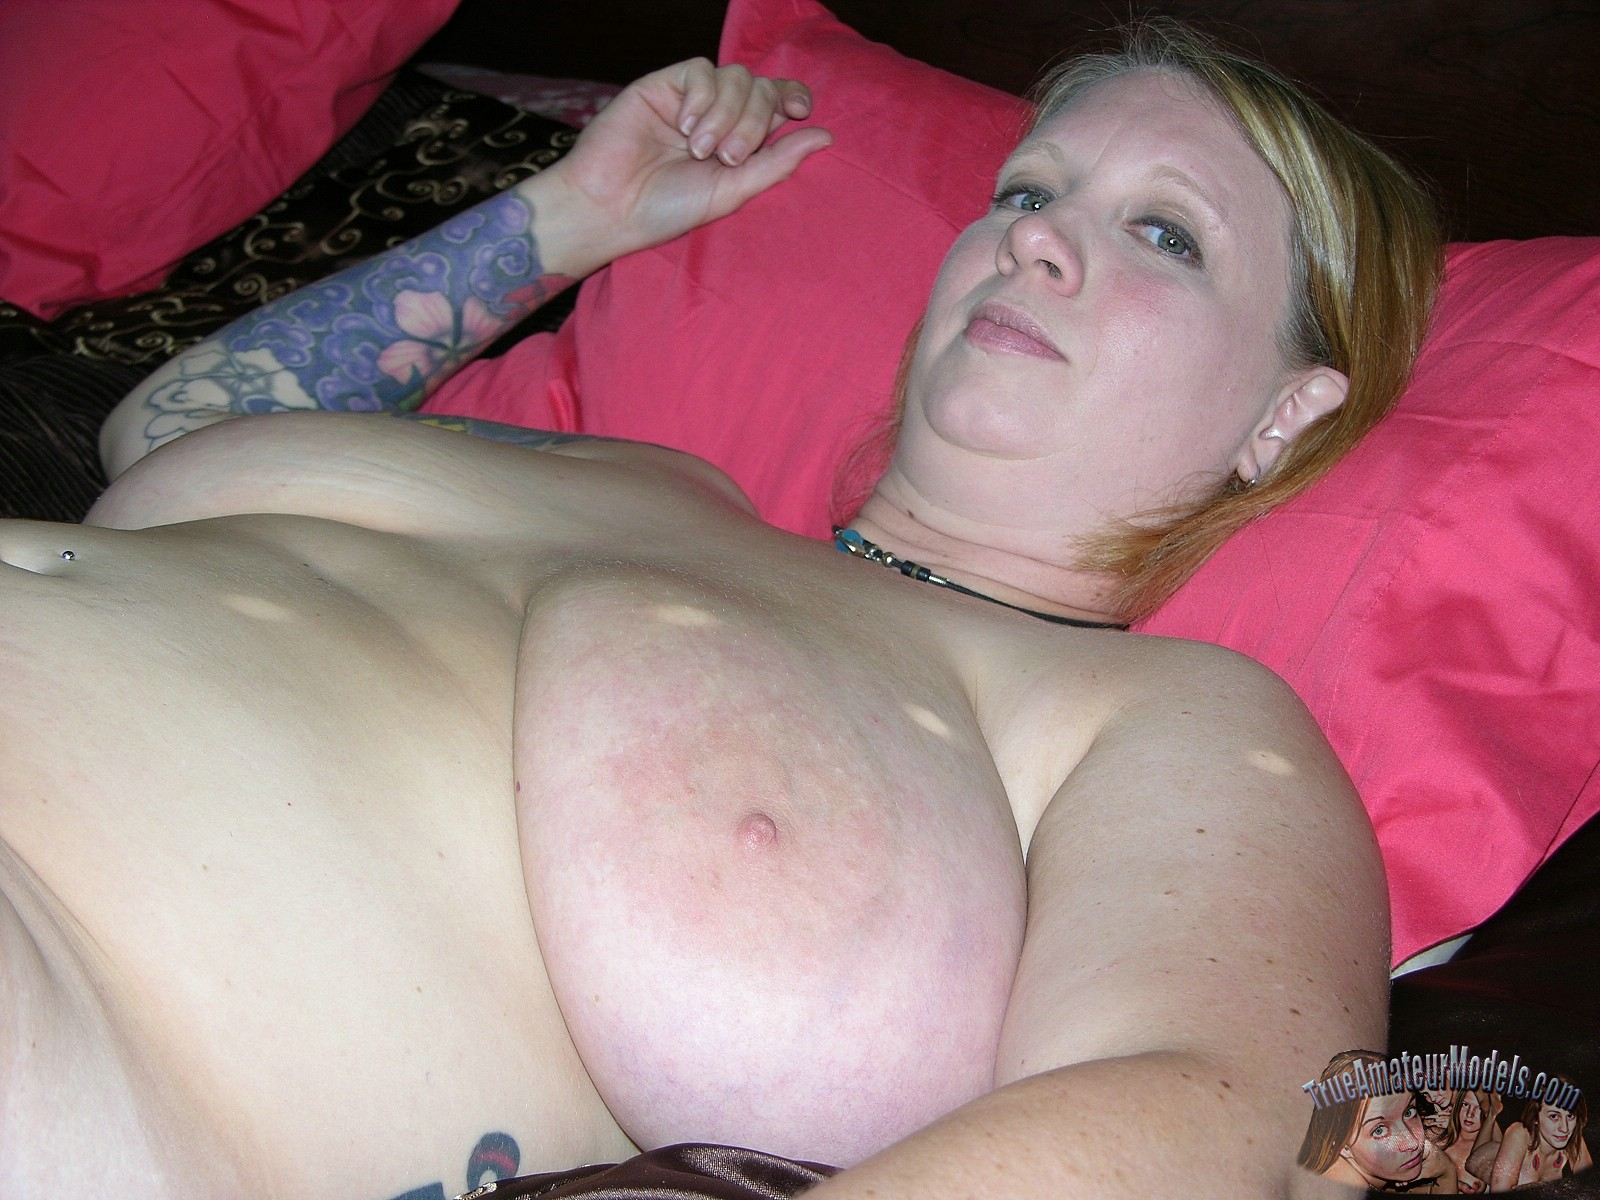 Amateur chubby women with big tits accept. The